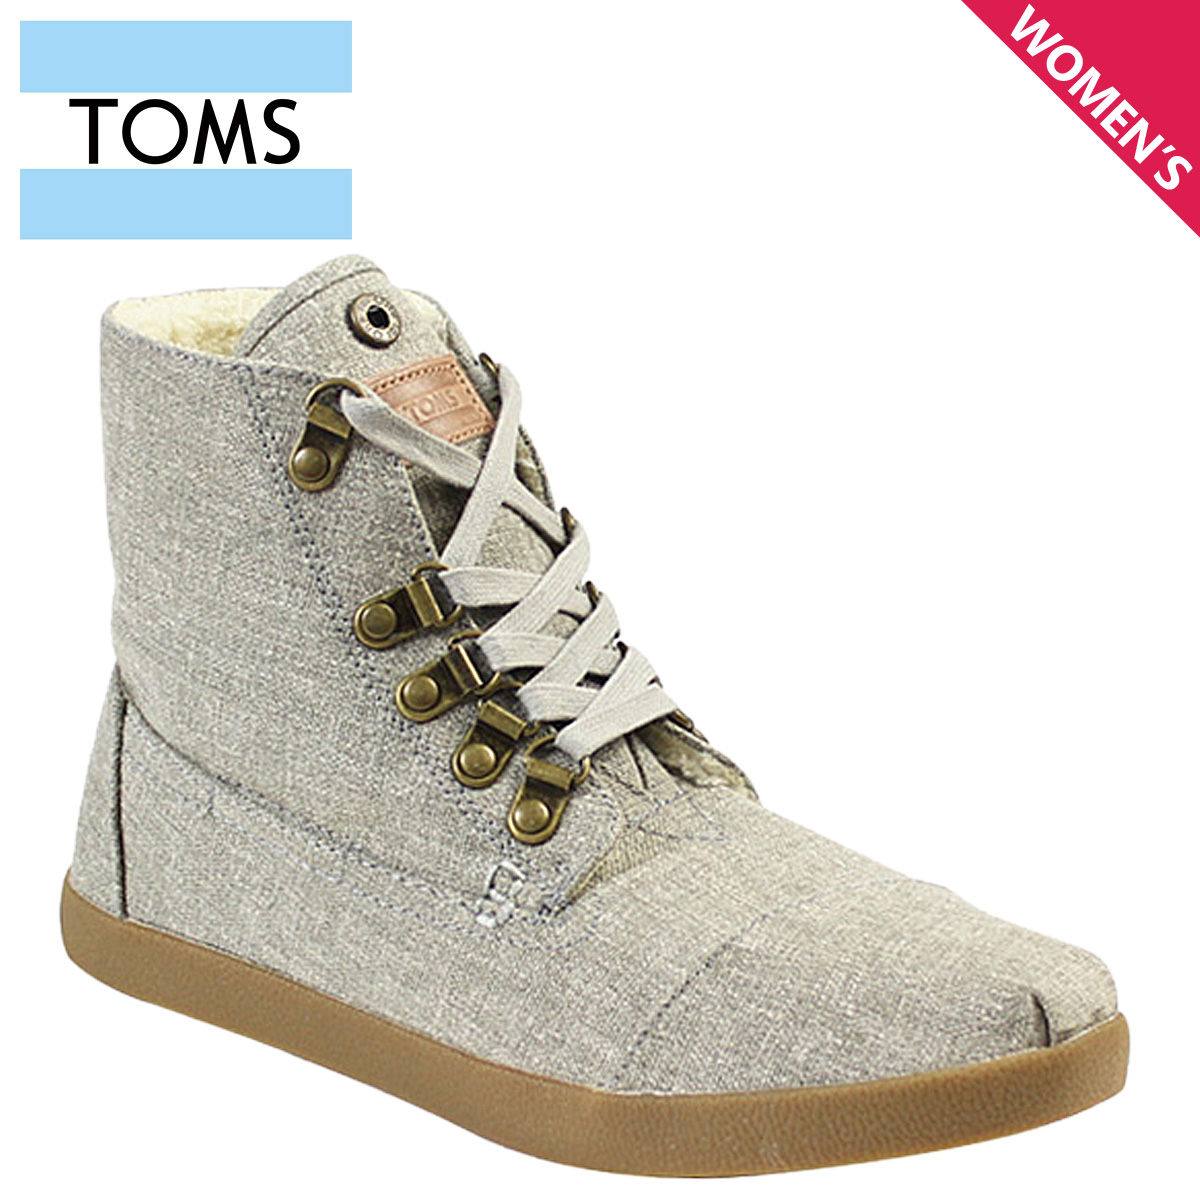 ac44fe8a10c It on every pair of shoes purchased in your new pair of shoes is presented  to children who need shoes. This is a simple promise of TOMS